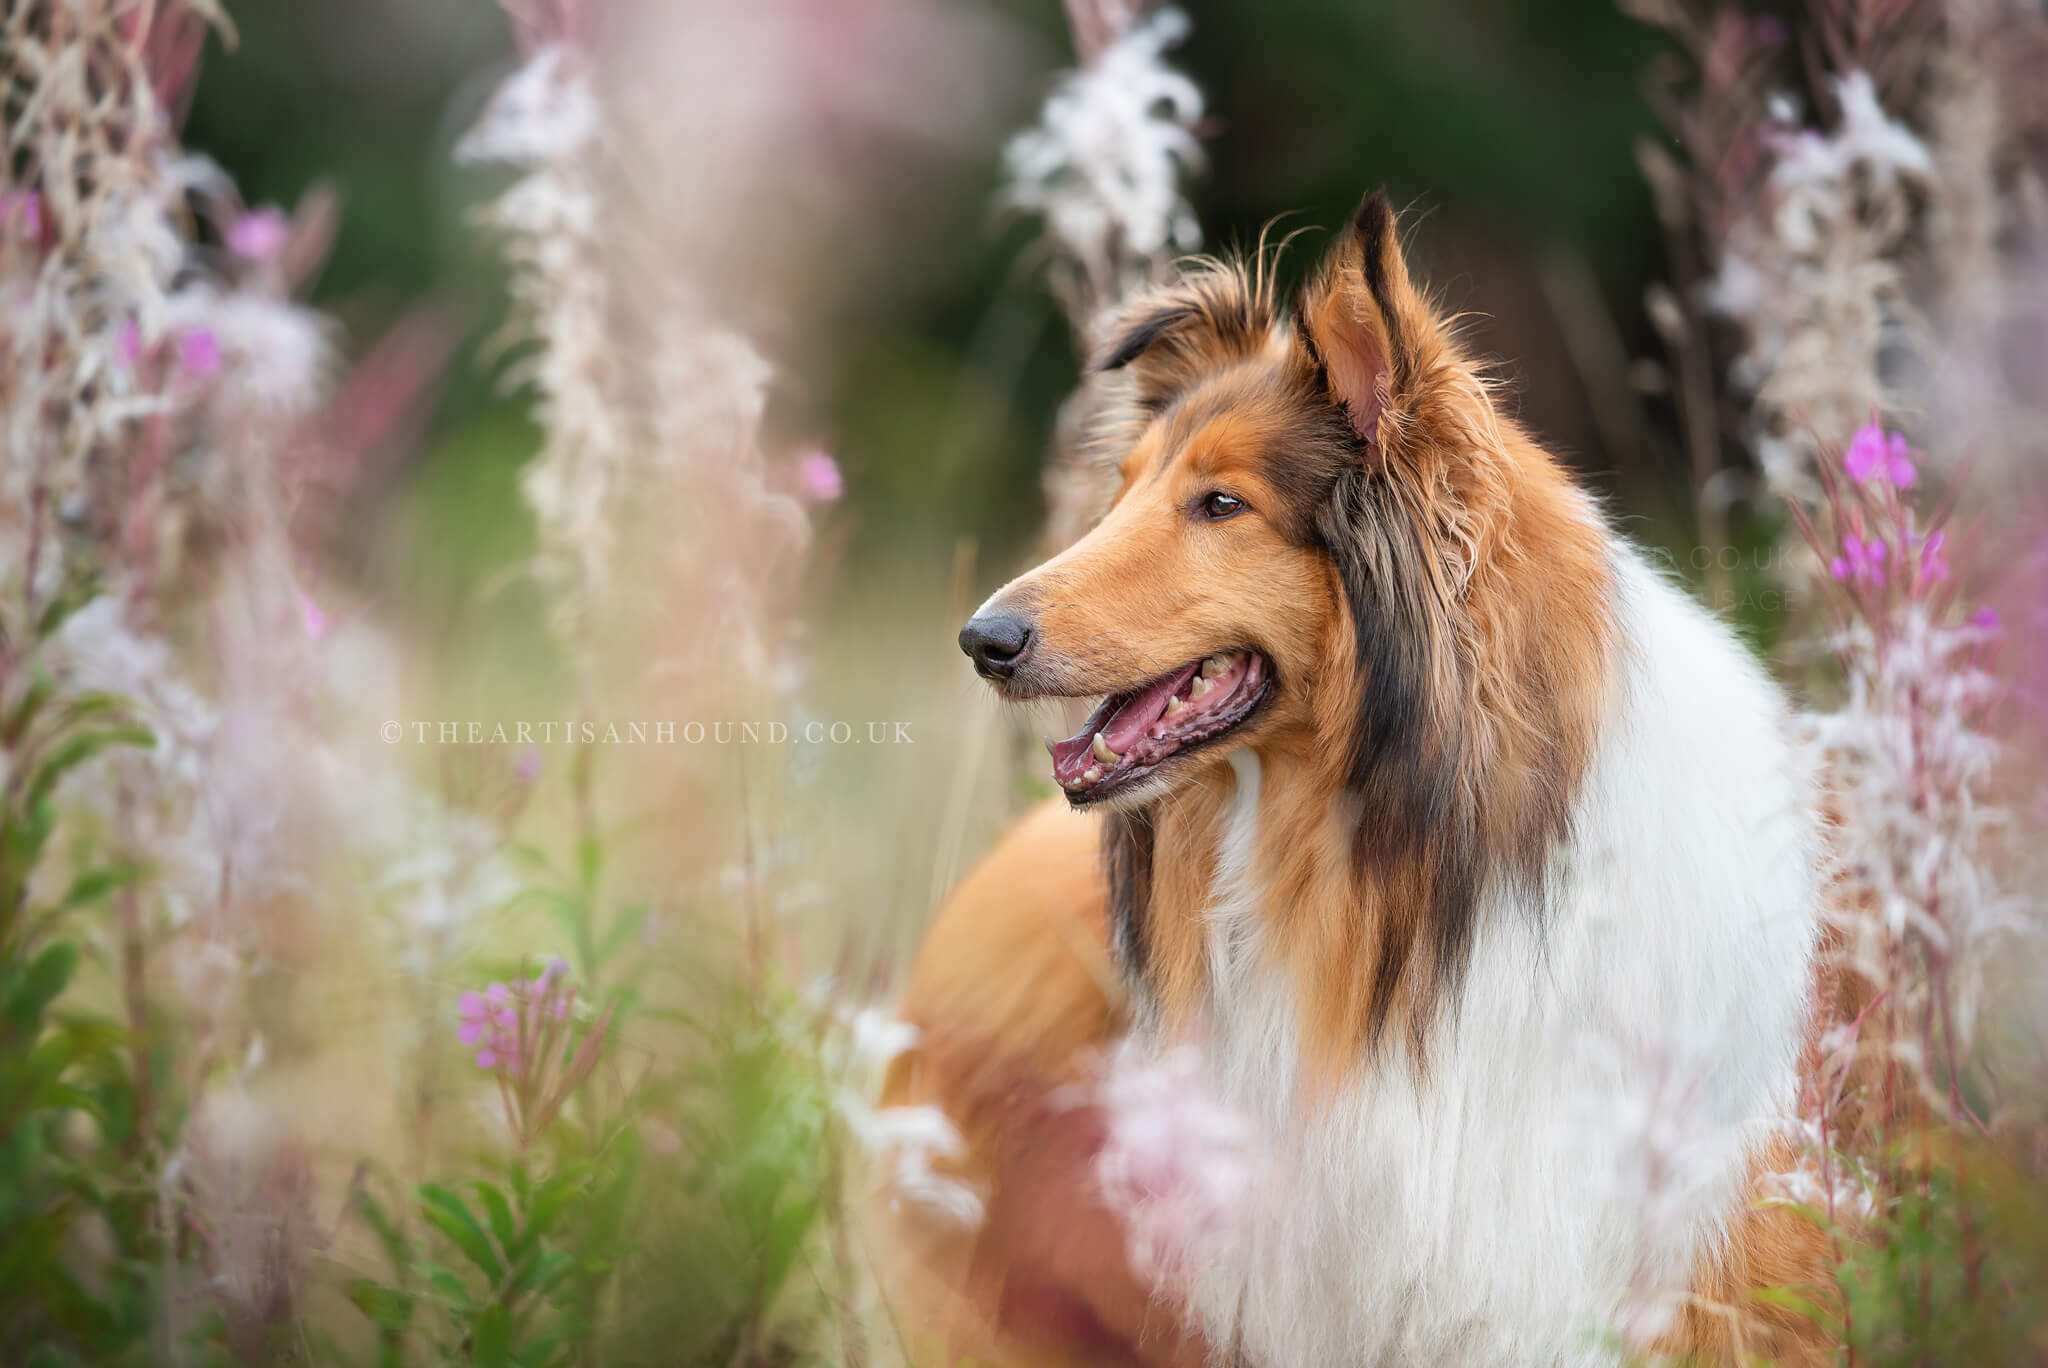 portrait of Collie dog in flowers